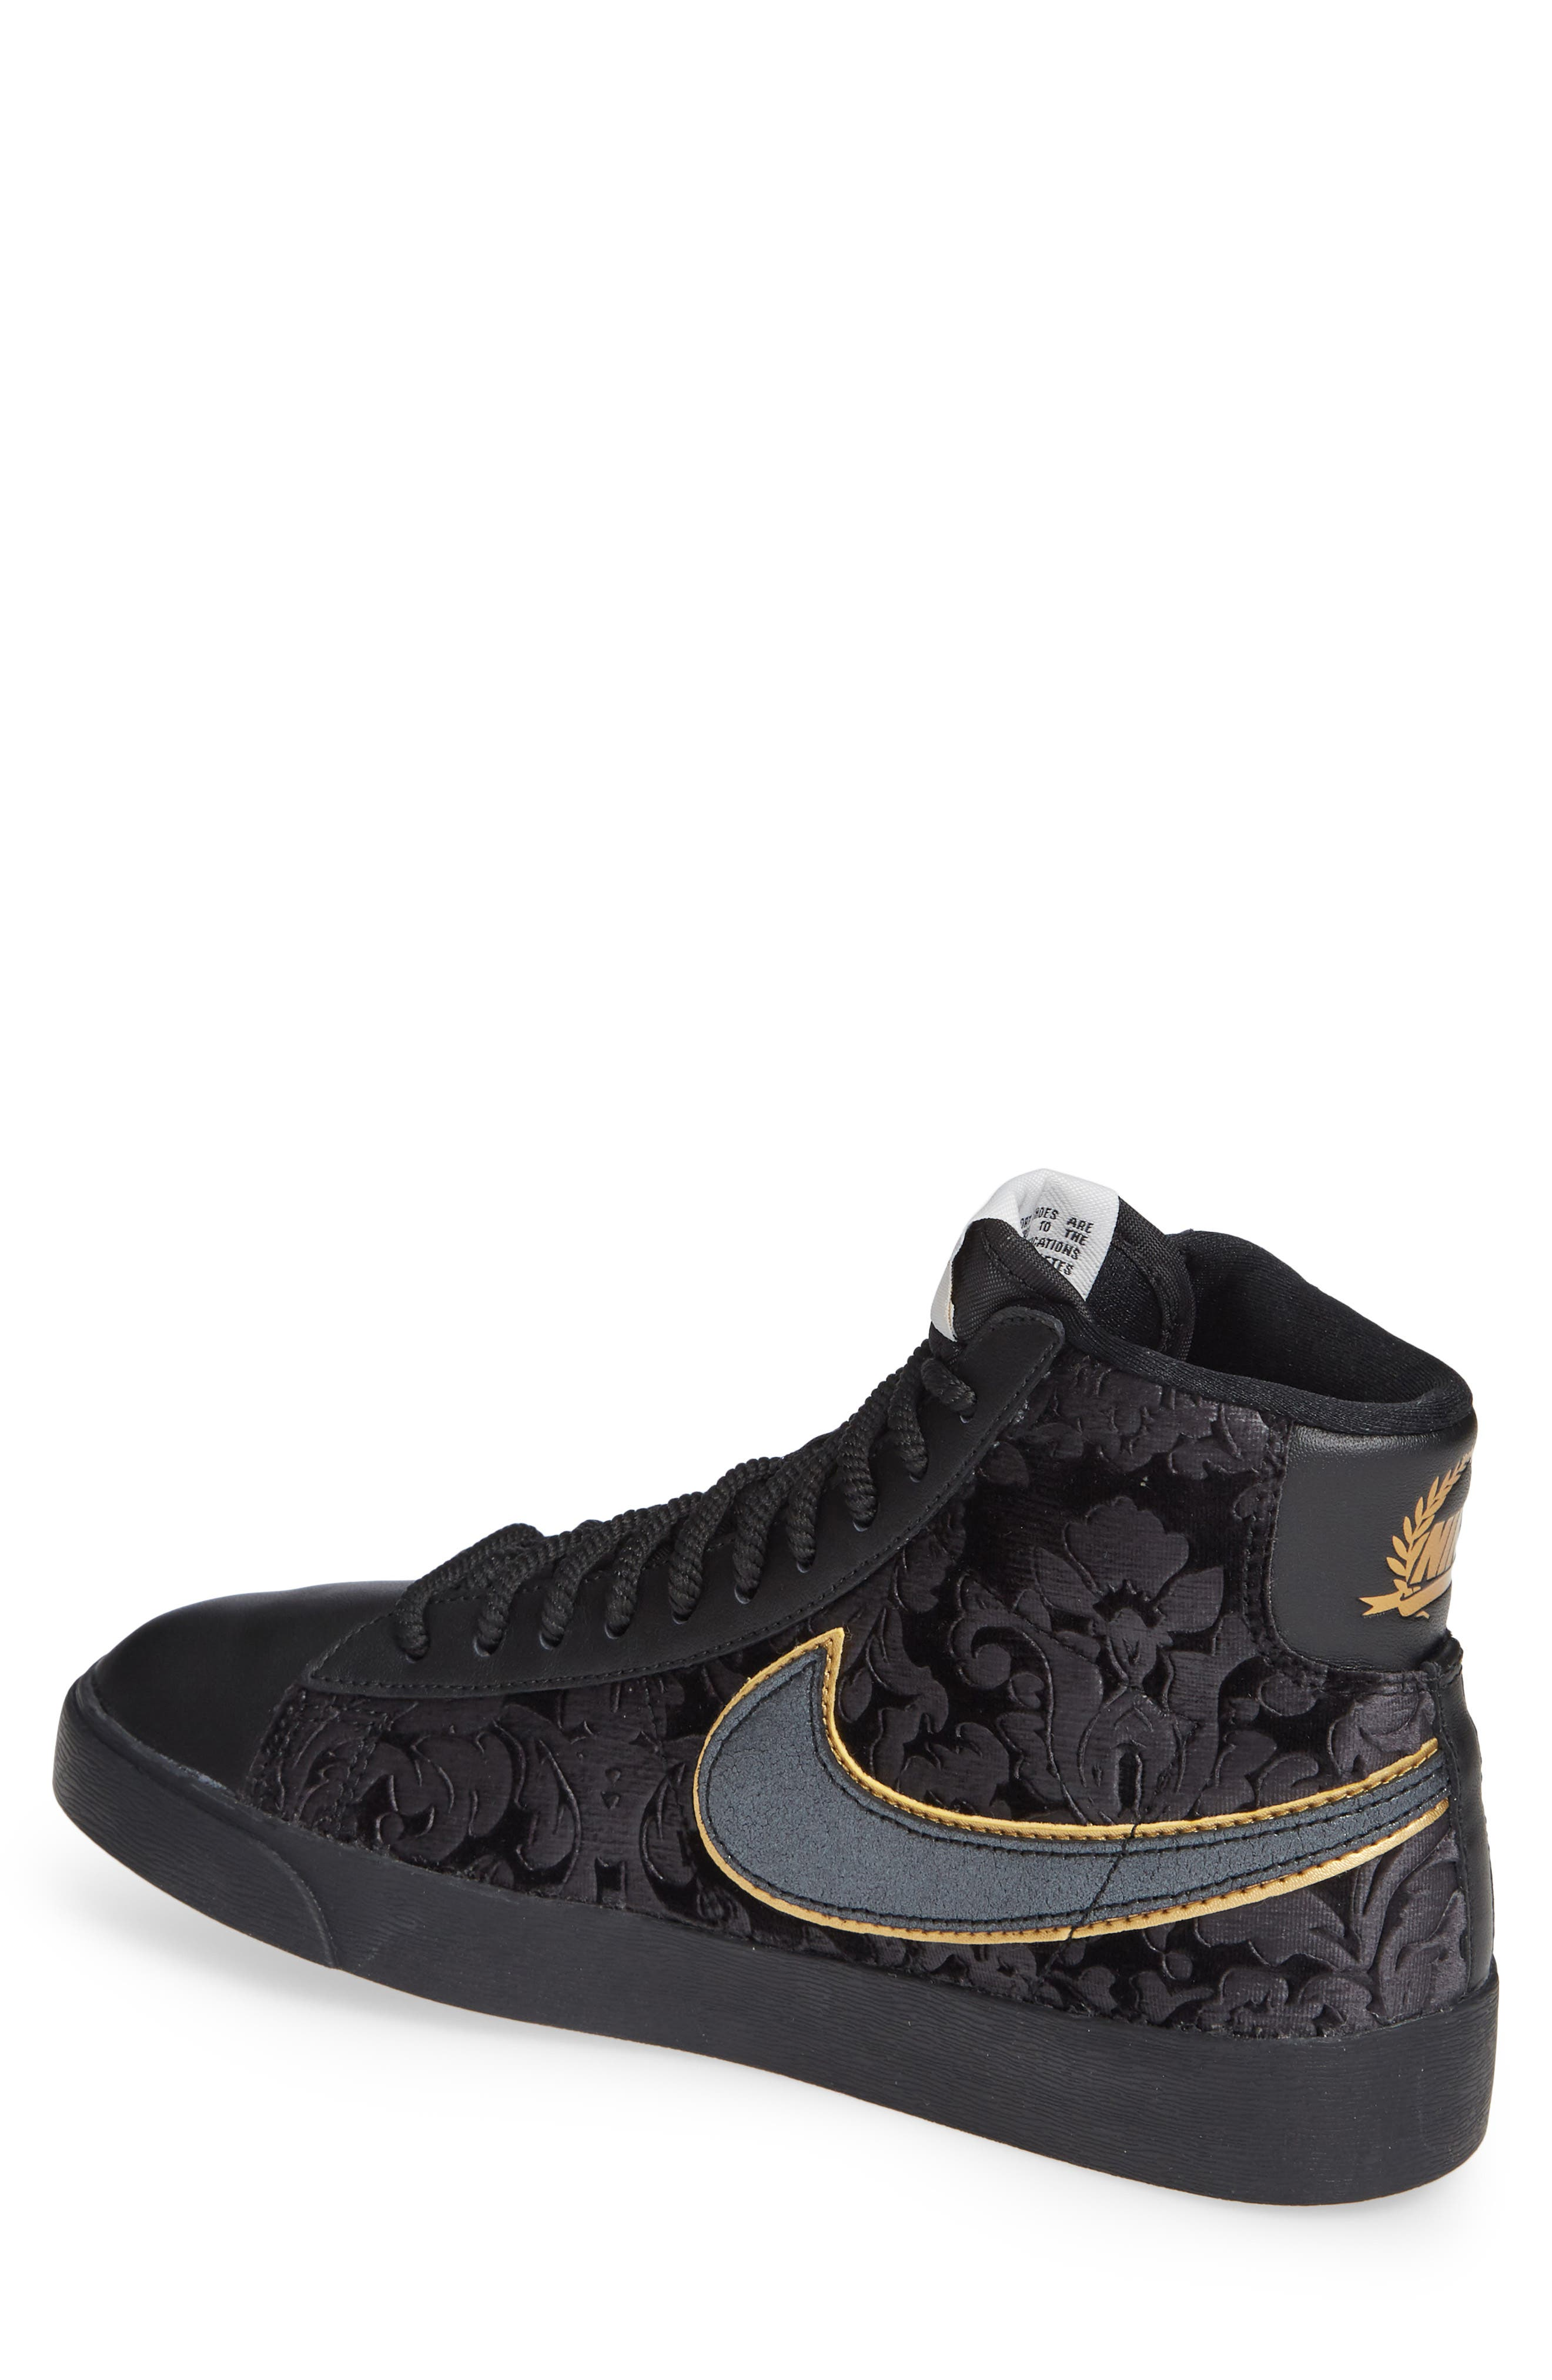 Blazer Mid Top Sneaker,                             Alternate thumbnail 2, color,                             BLACK/ GOLD/ SUMMIT WHITE